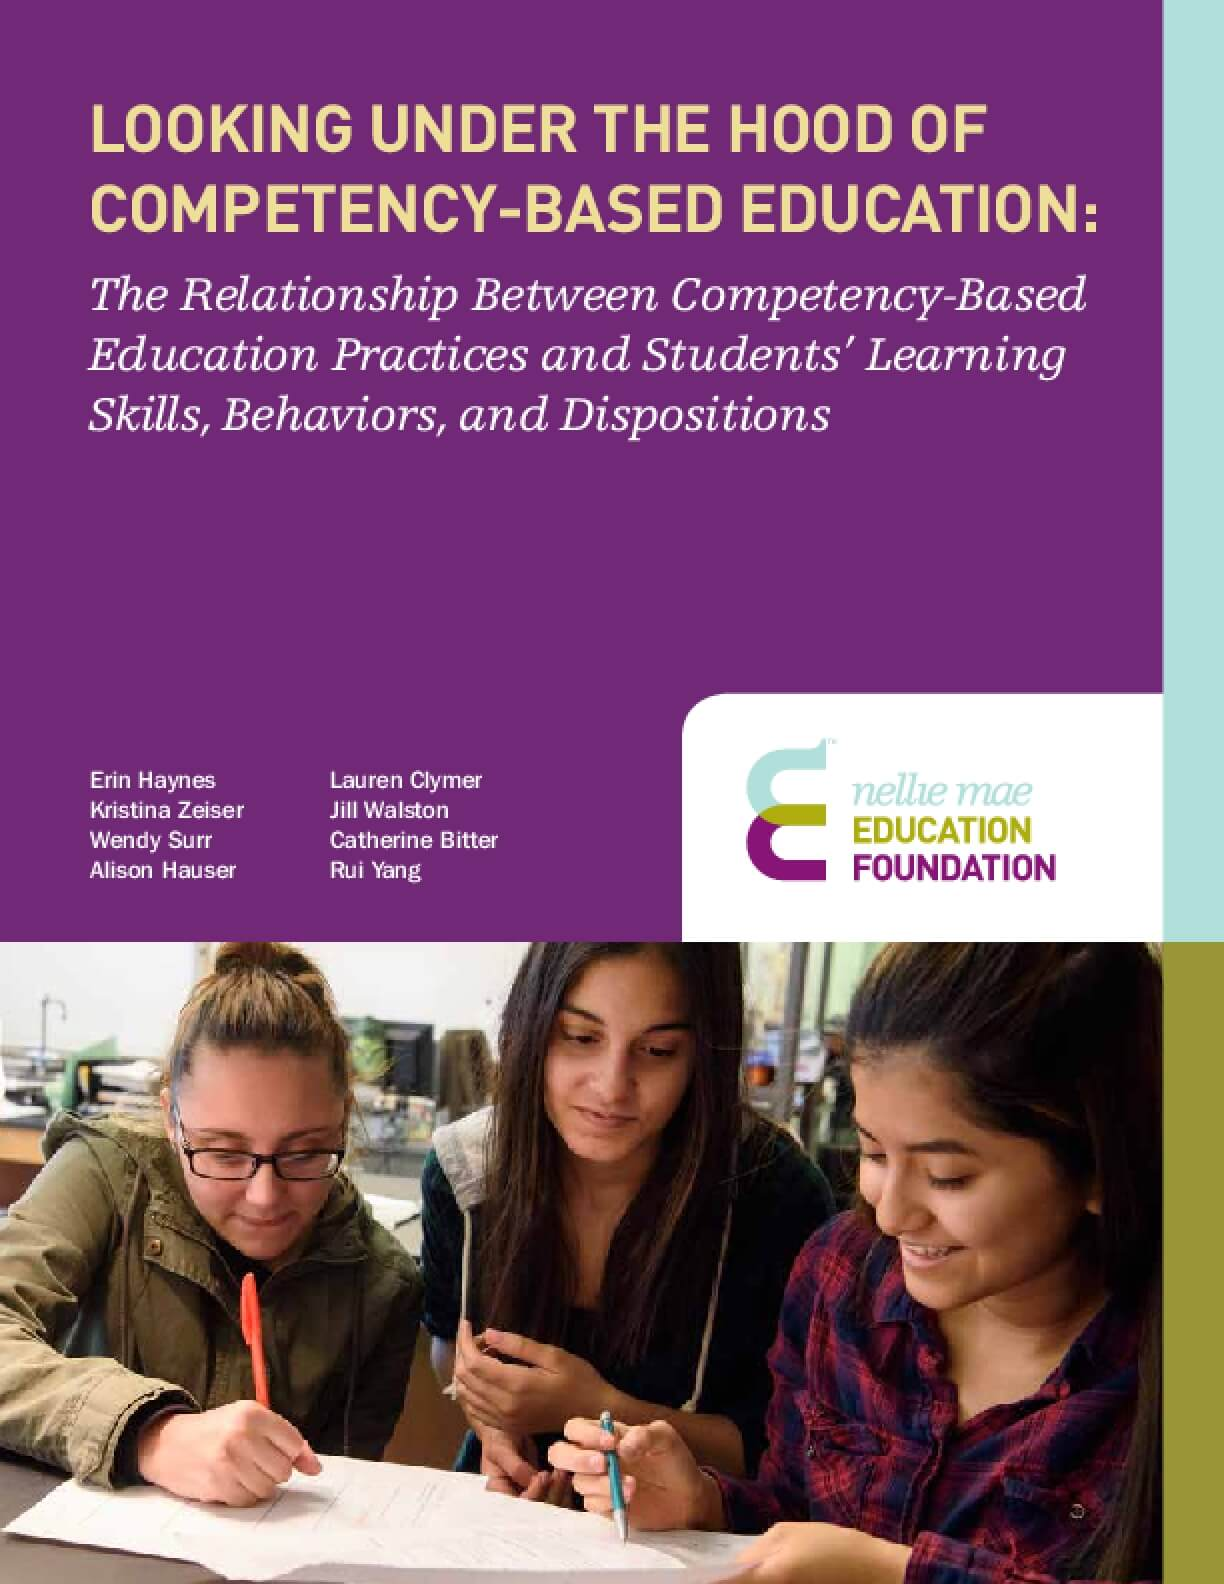 Looking Under the Hood of Competency-Based Education: The Relationship Between Competency-Based Education Practices and Students' Learning Skills, Behaviors, and Dispositions